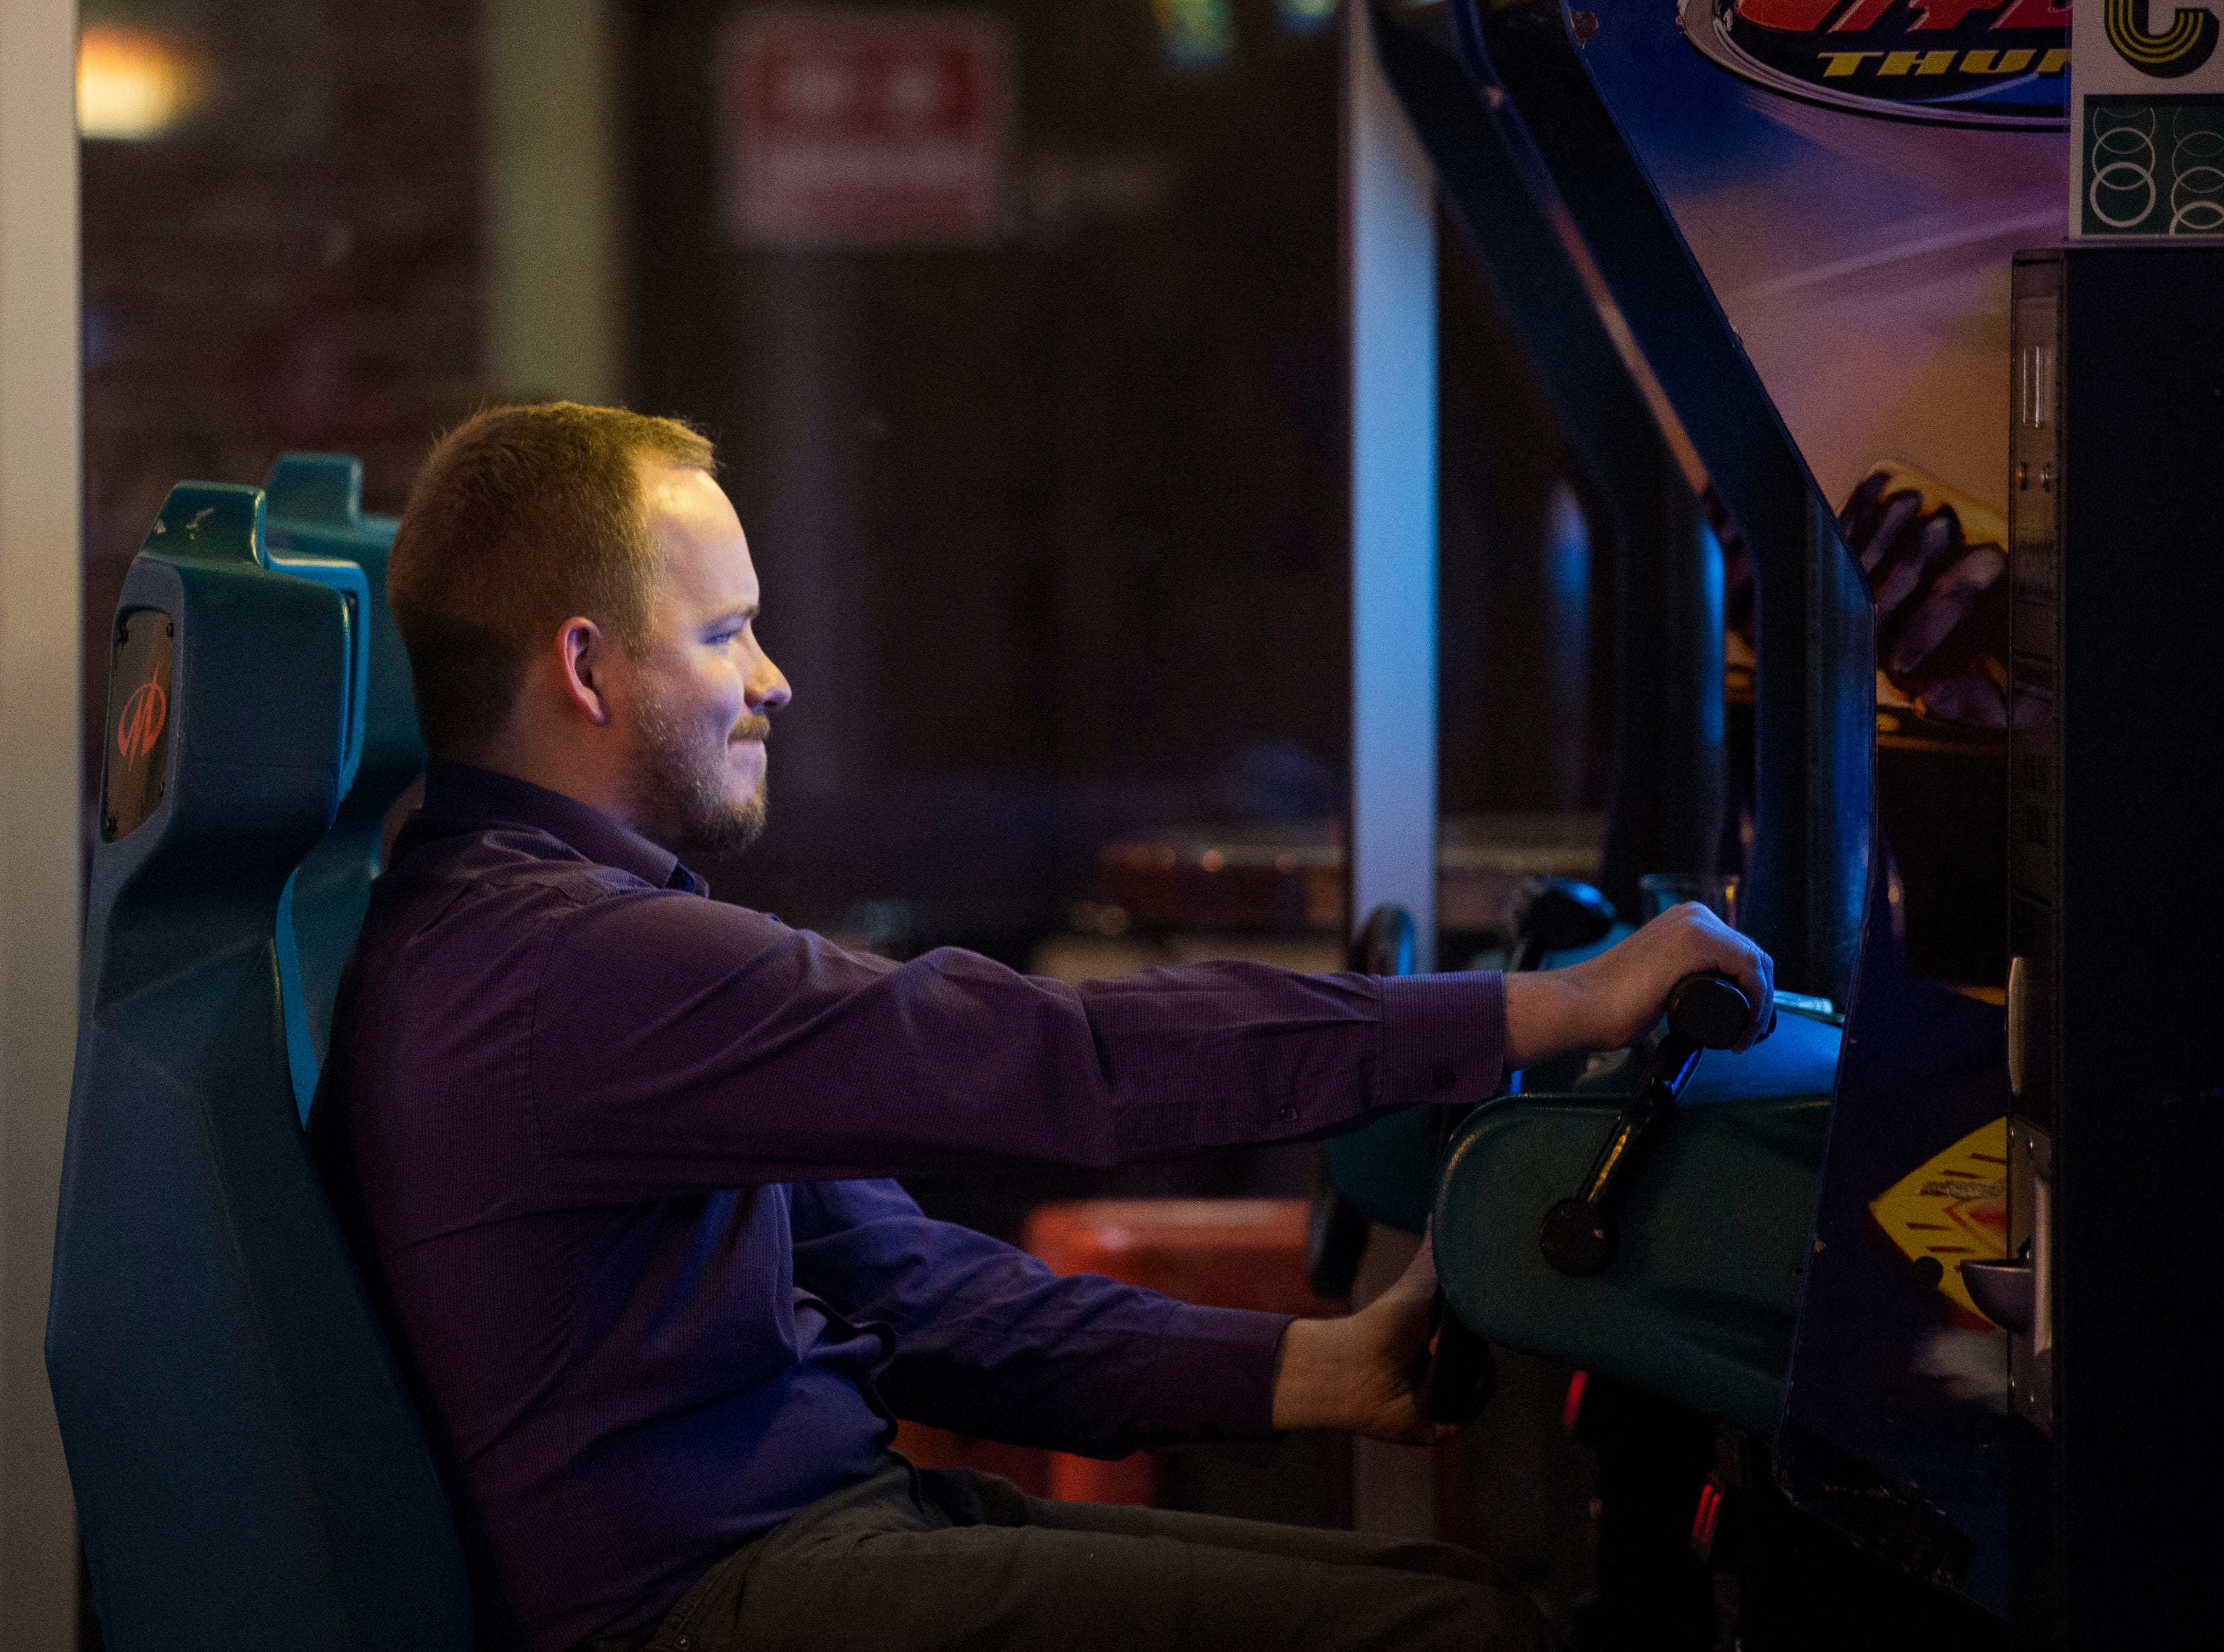 A customer plays the boat racing game Hydro Thunder at High Score Saloon Wednesday Oct. 10, 2018.